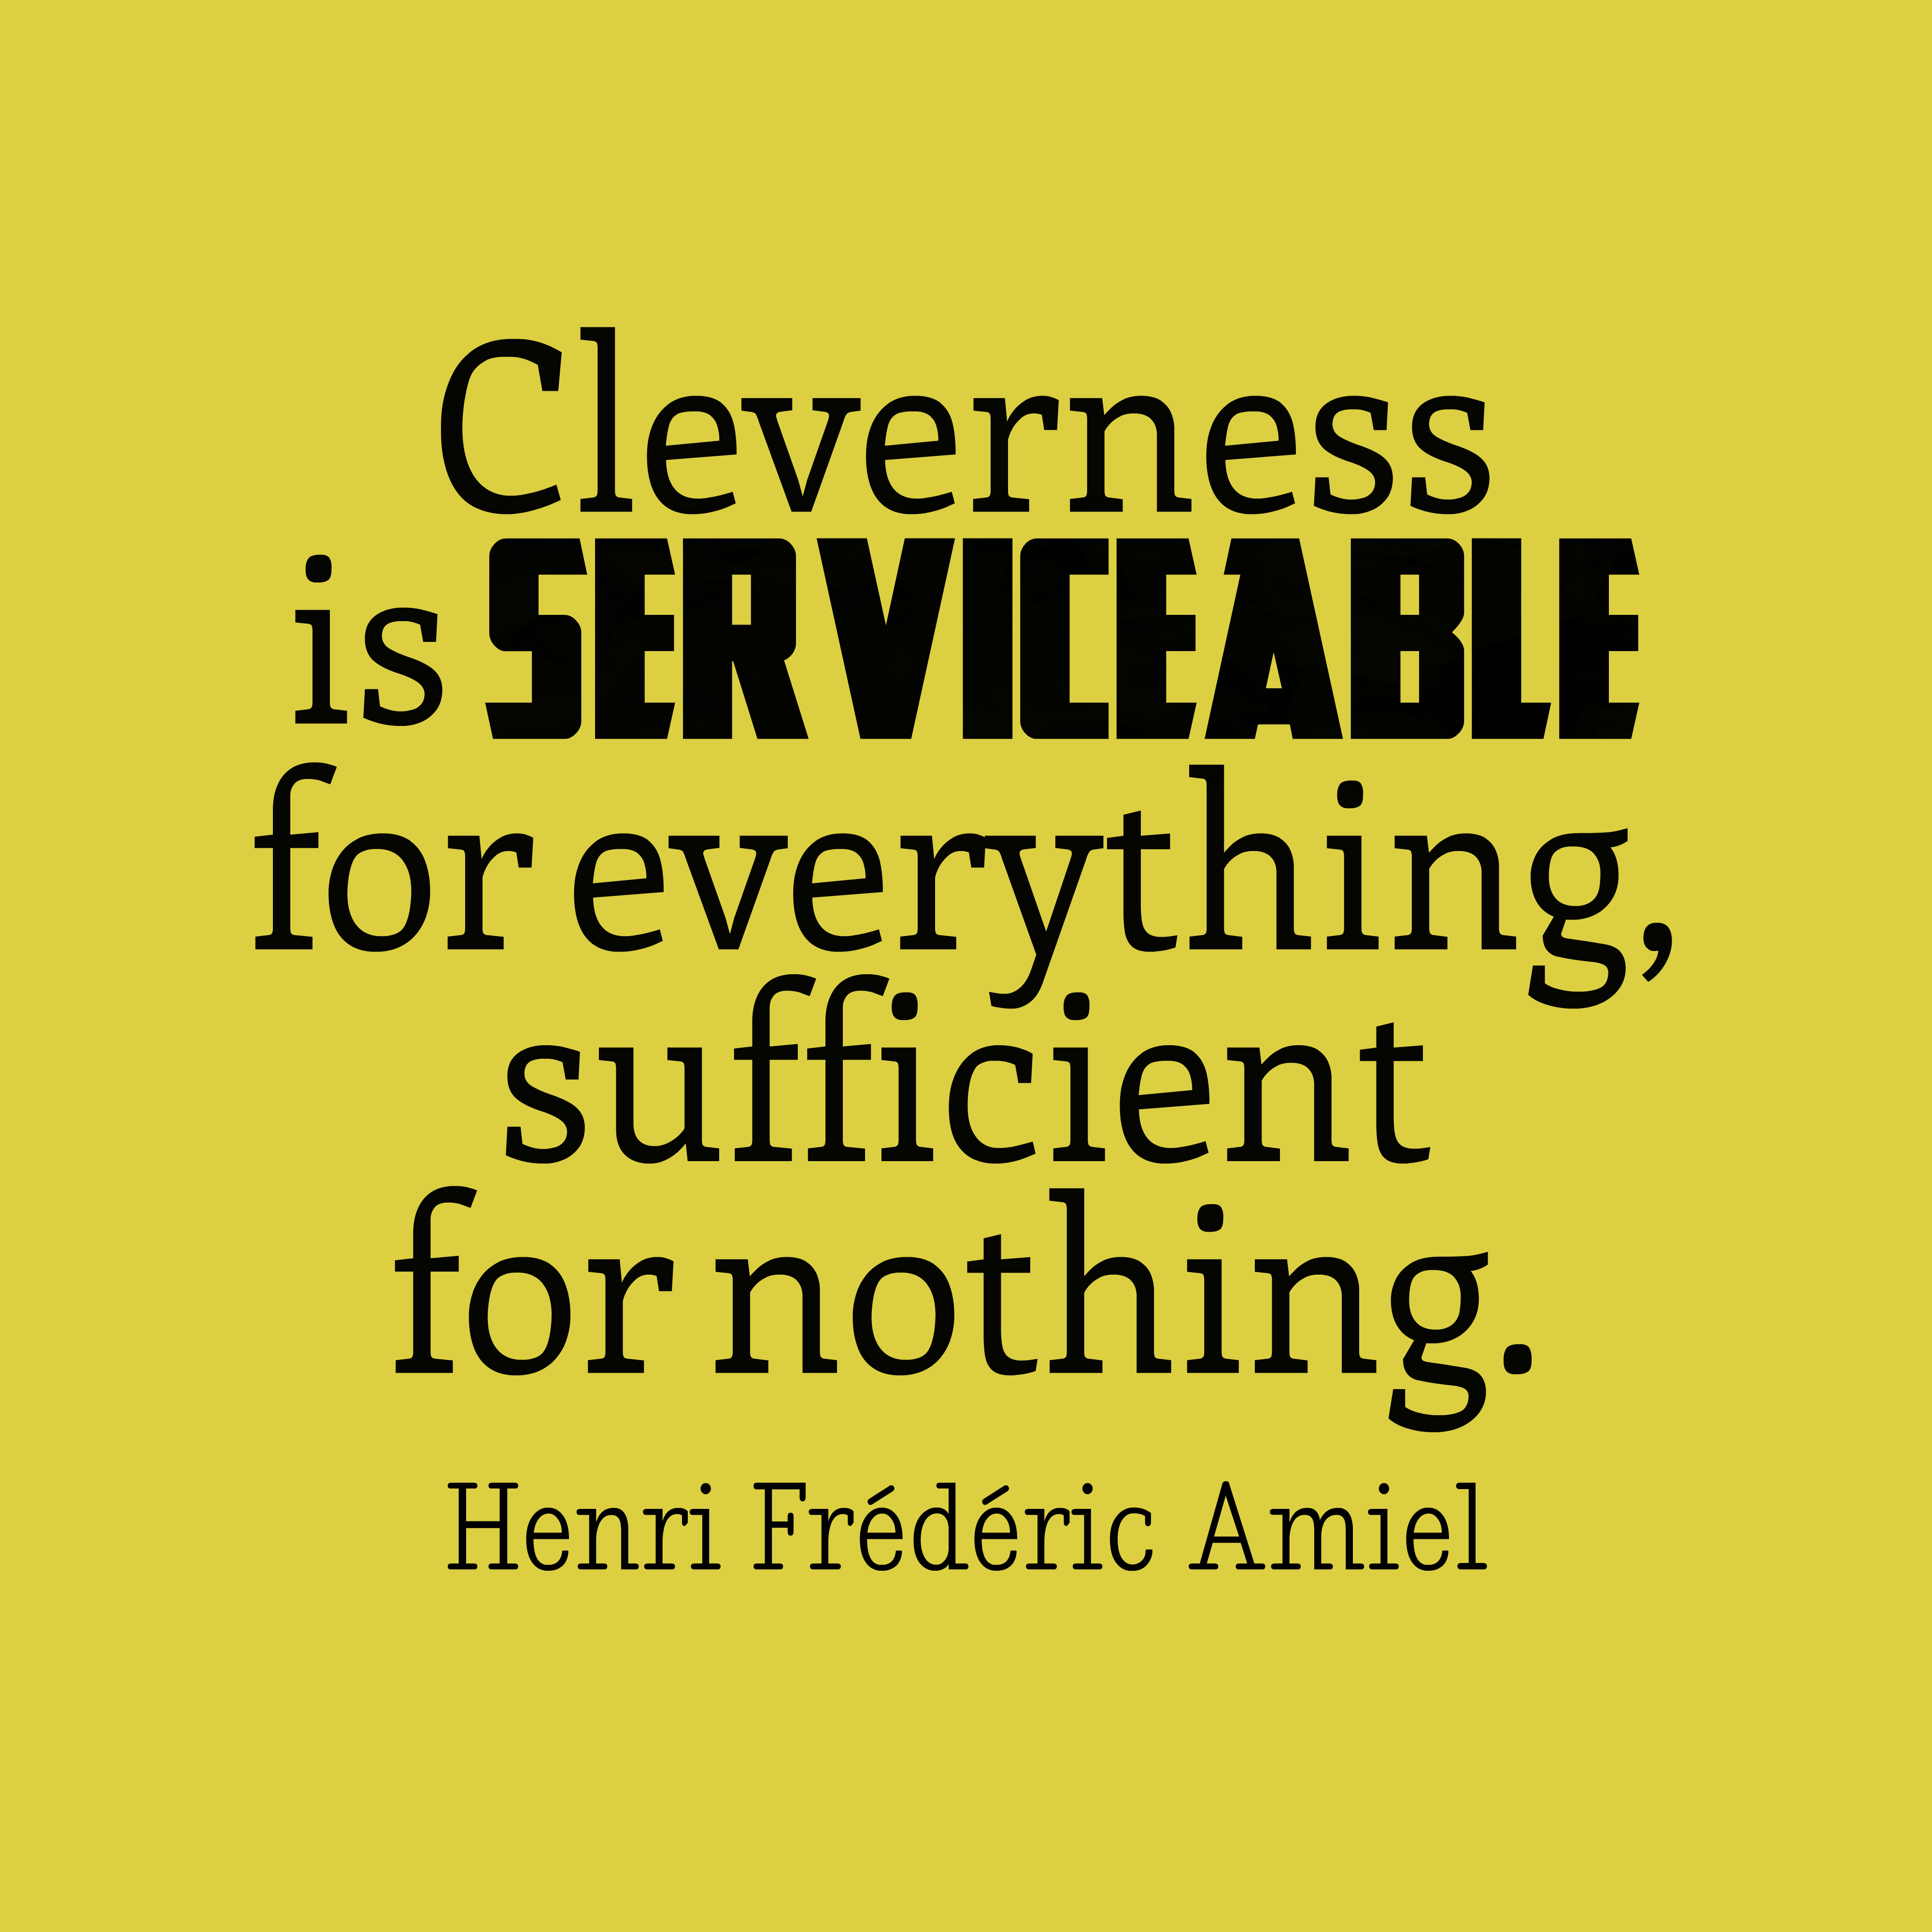 Quotes image of Cleverness is serviceable for everything, sufficient for nothing.